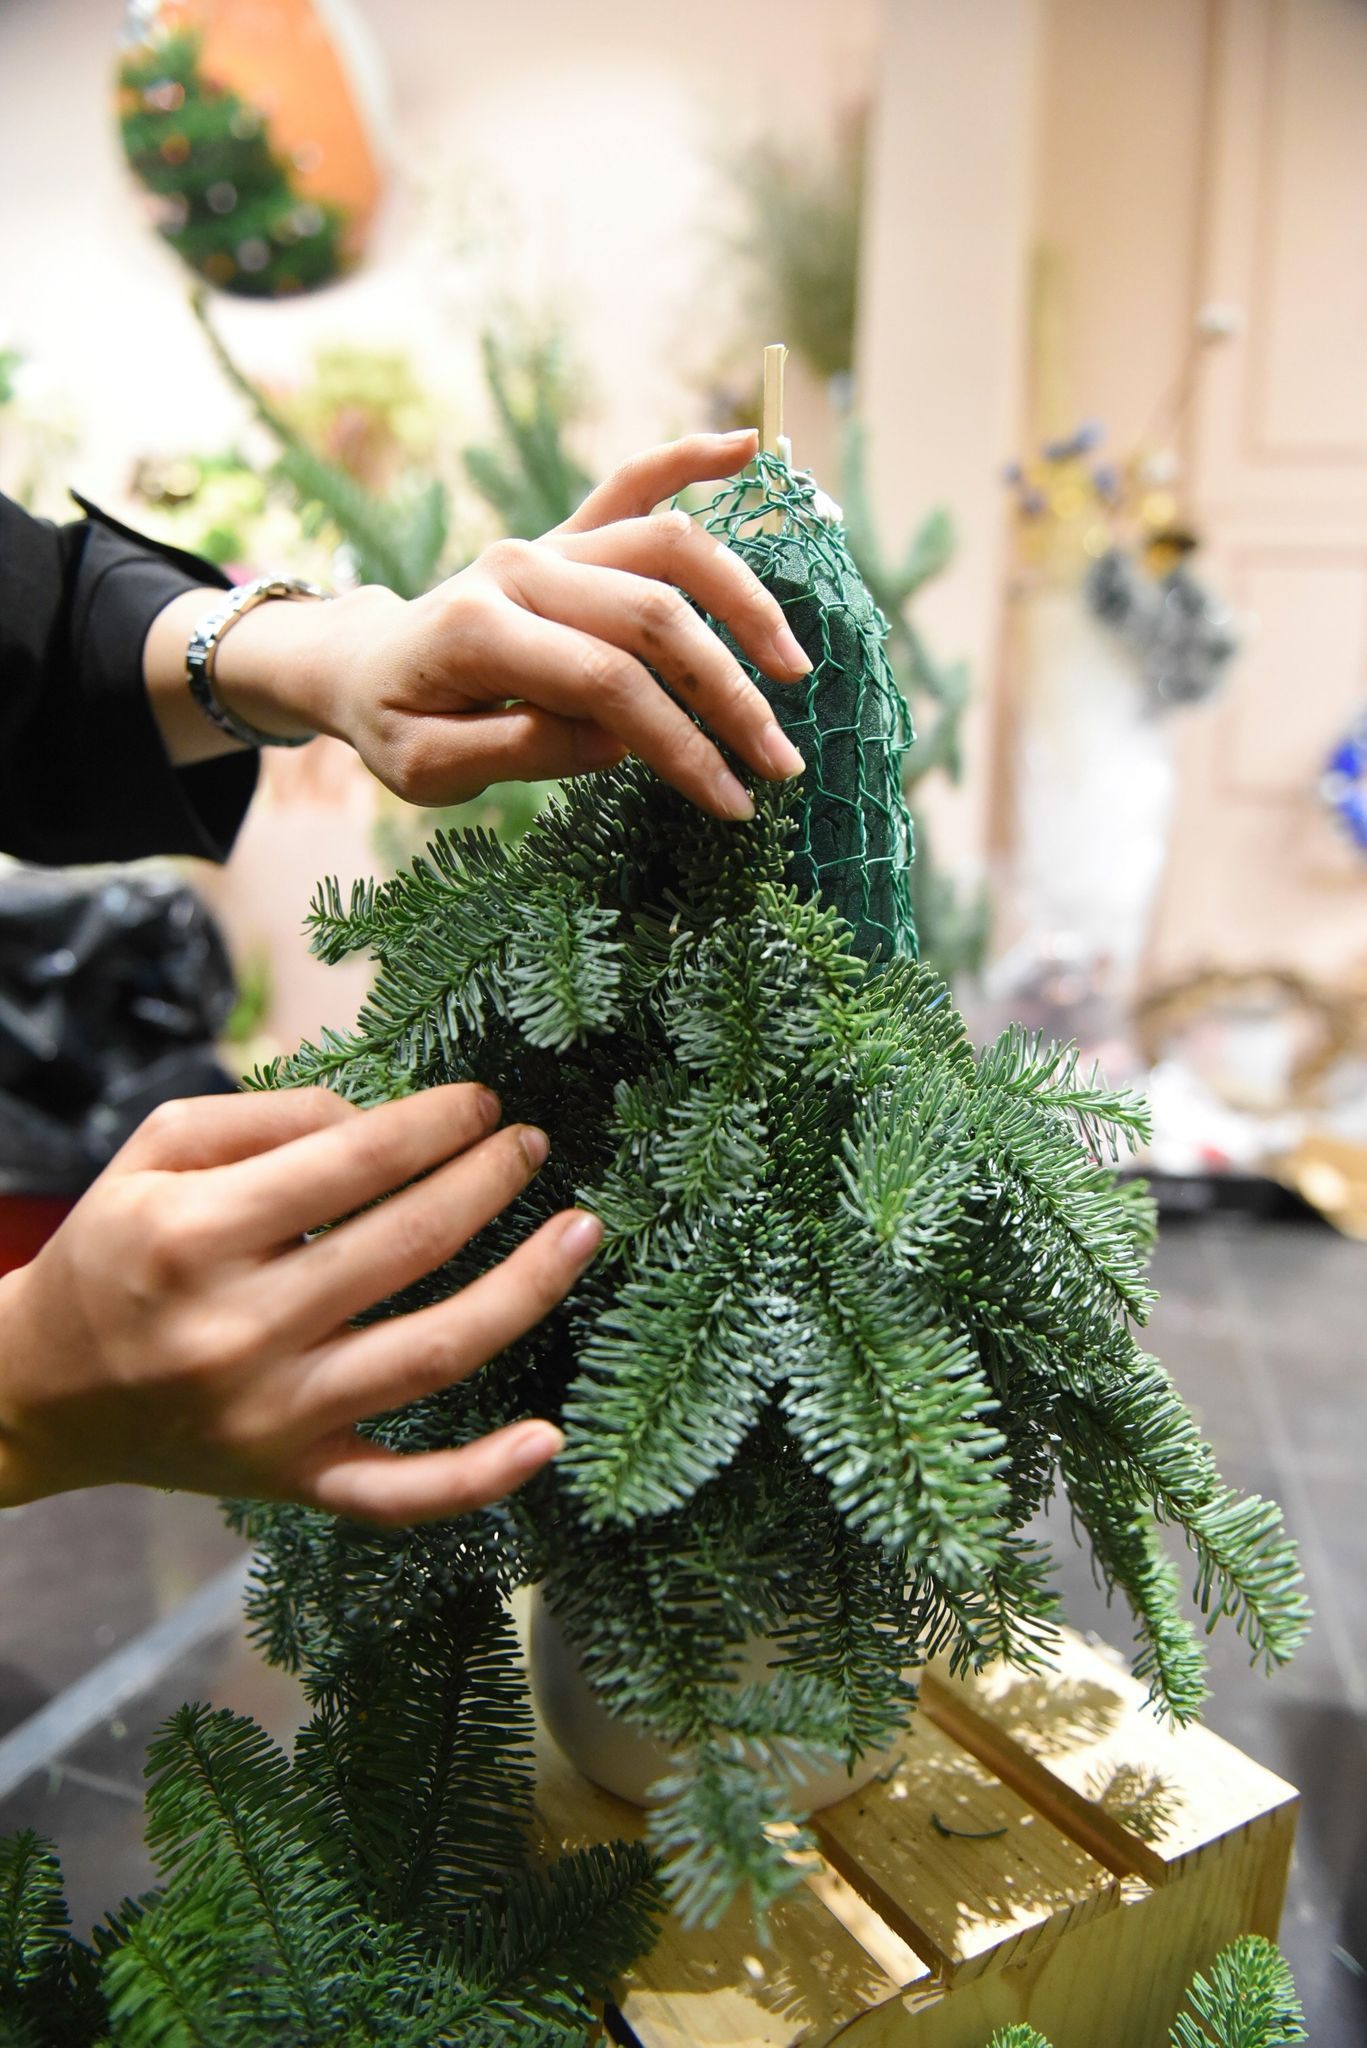 Noble fir branches are shaped into a Christmas tree at a shop in Ho Chi Minh City's District 3. Photo: Ngoc Phuong/ Tuoi Tre News